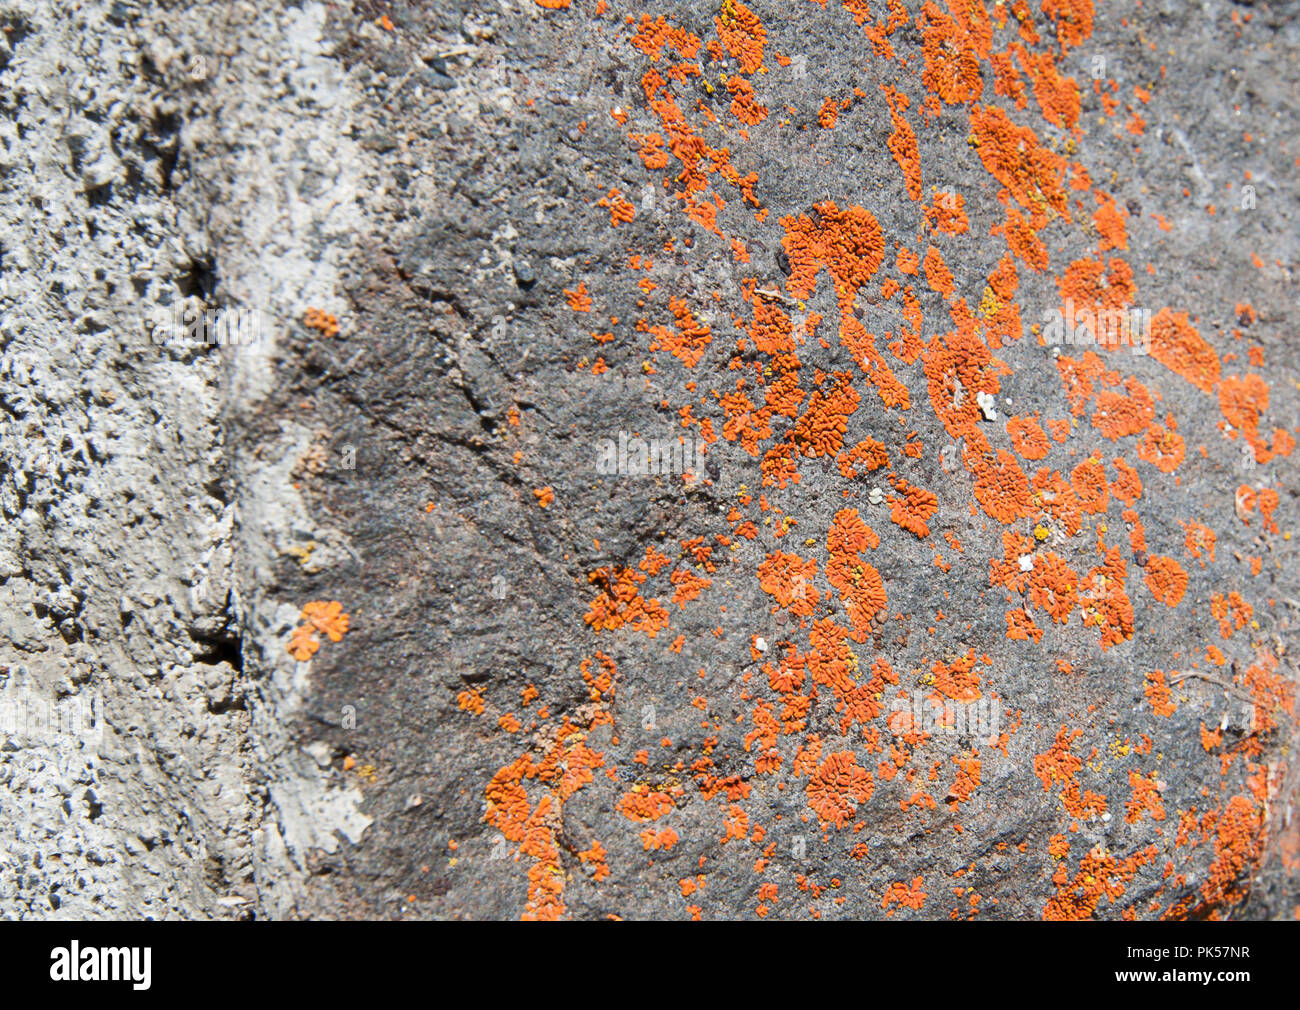 Nature closeup of rocks with deeply colored orange lichen growing.  Cool texture details could be used as a grunge texture as a design element too. - Stock Image